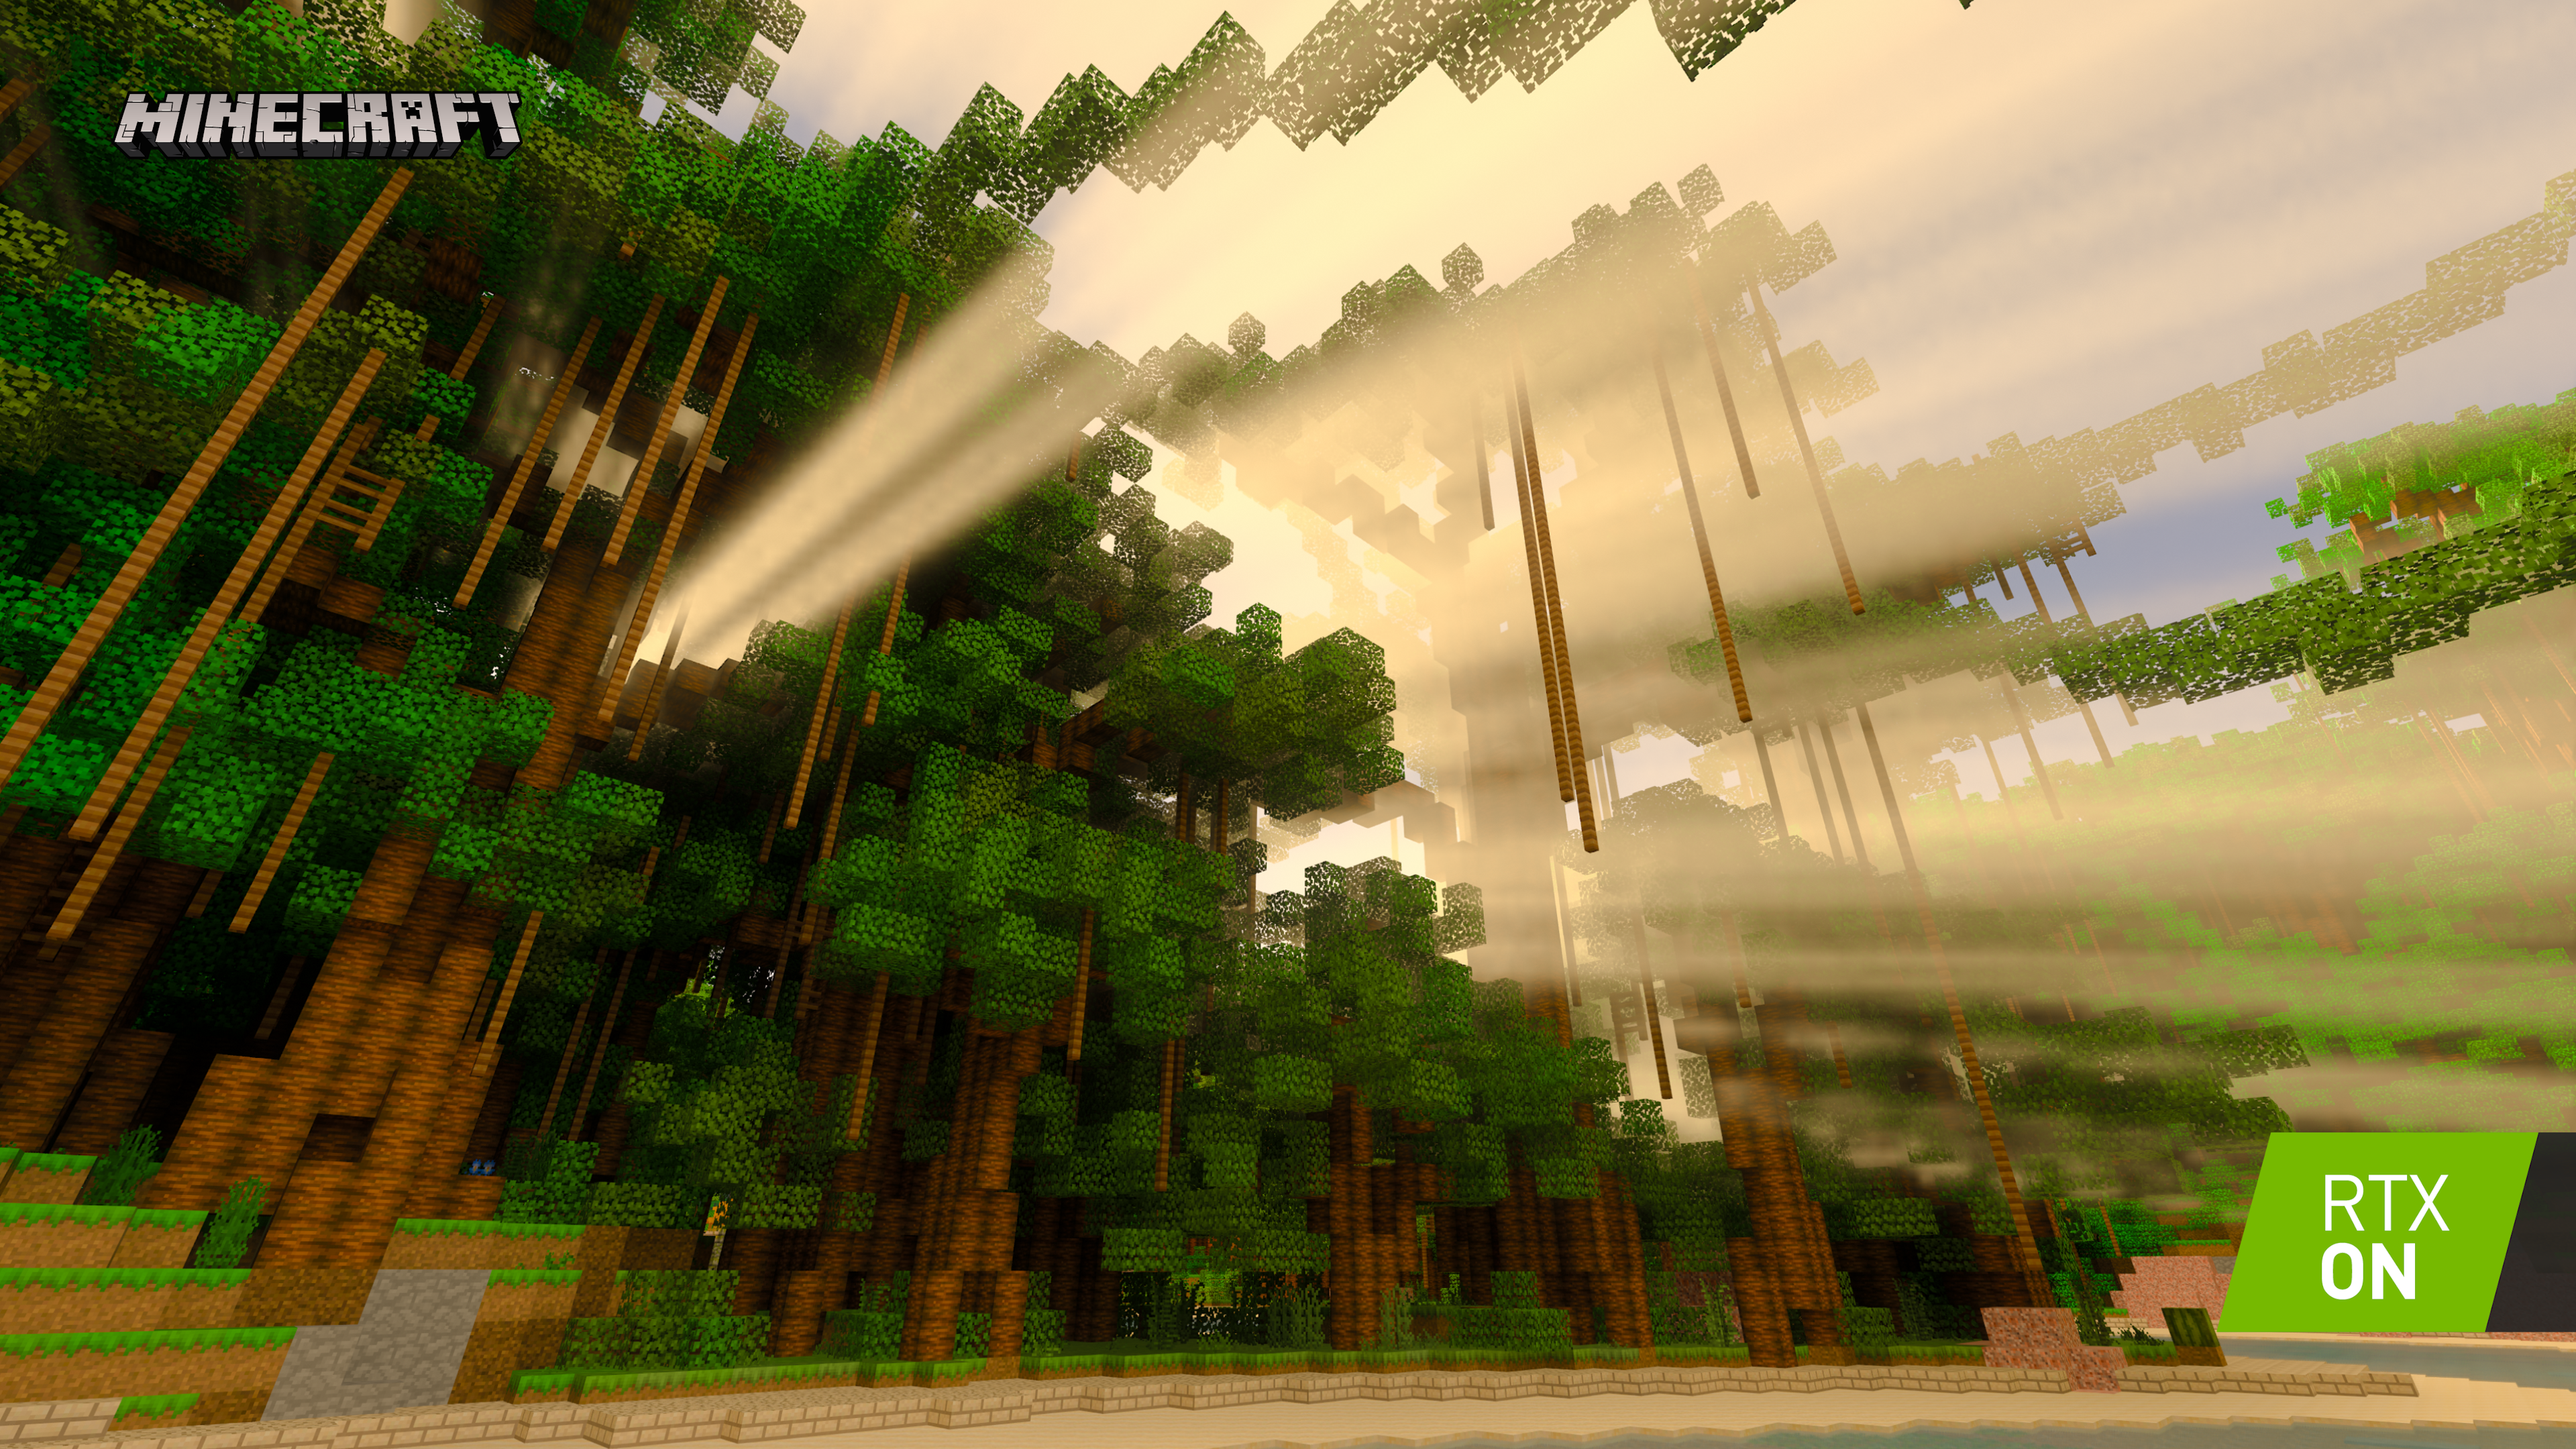 The Minecraft with RTX Beta Is Out Now!